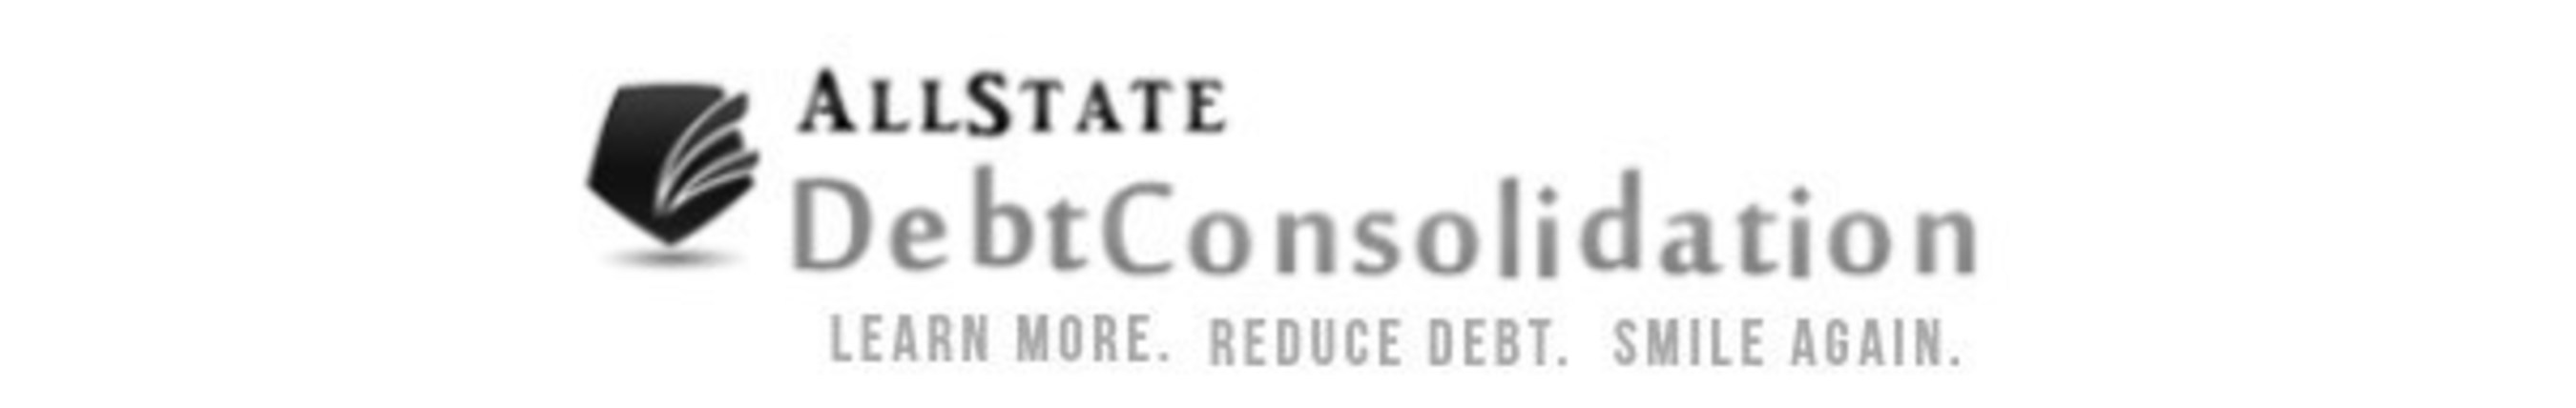 Allstate Debt Consolidation Releases Its Recommended Company List for 2016